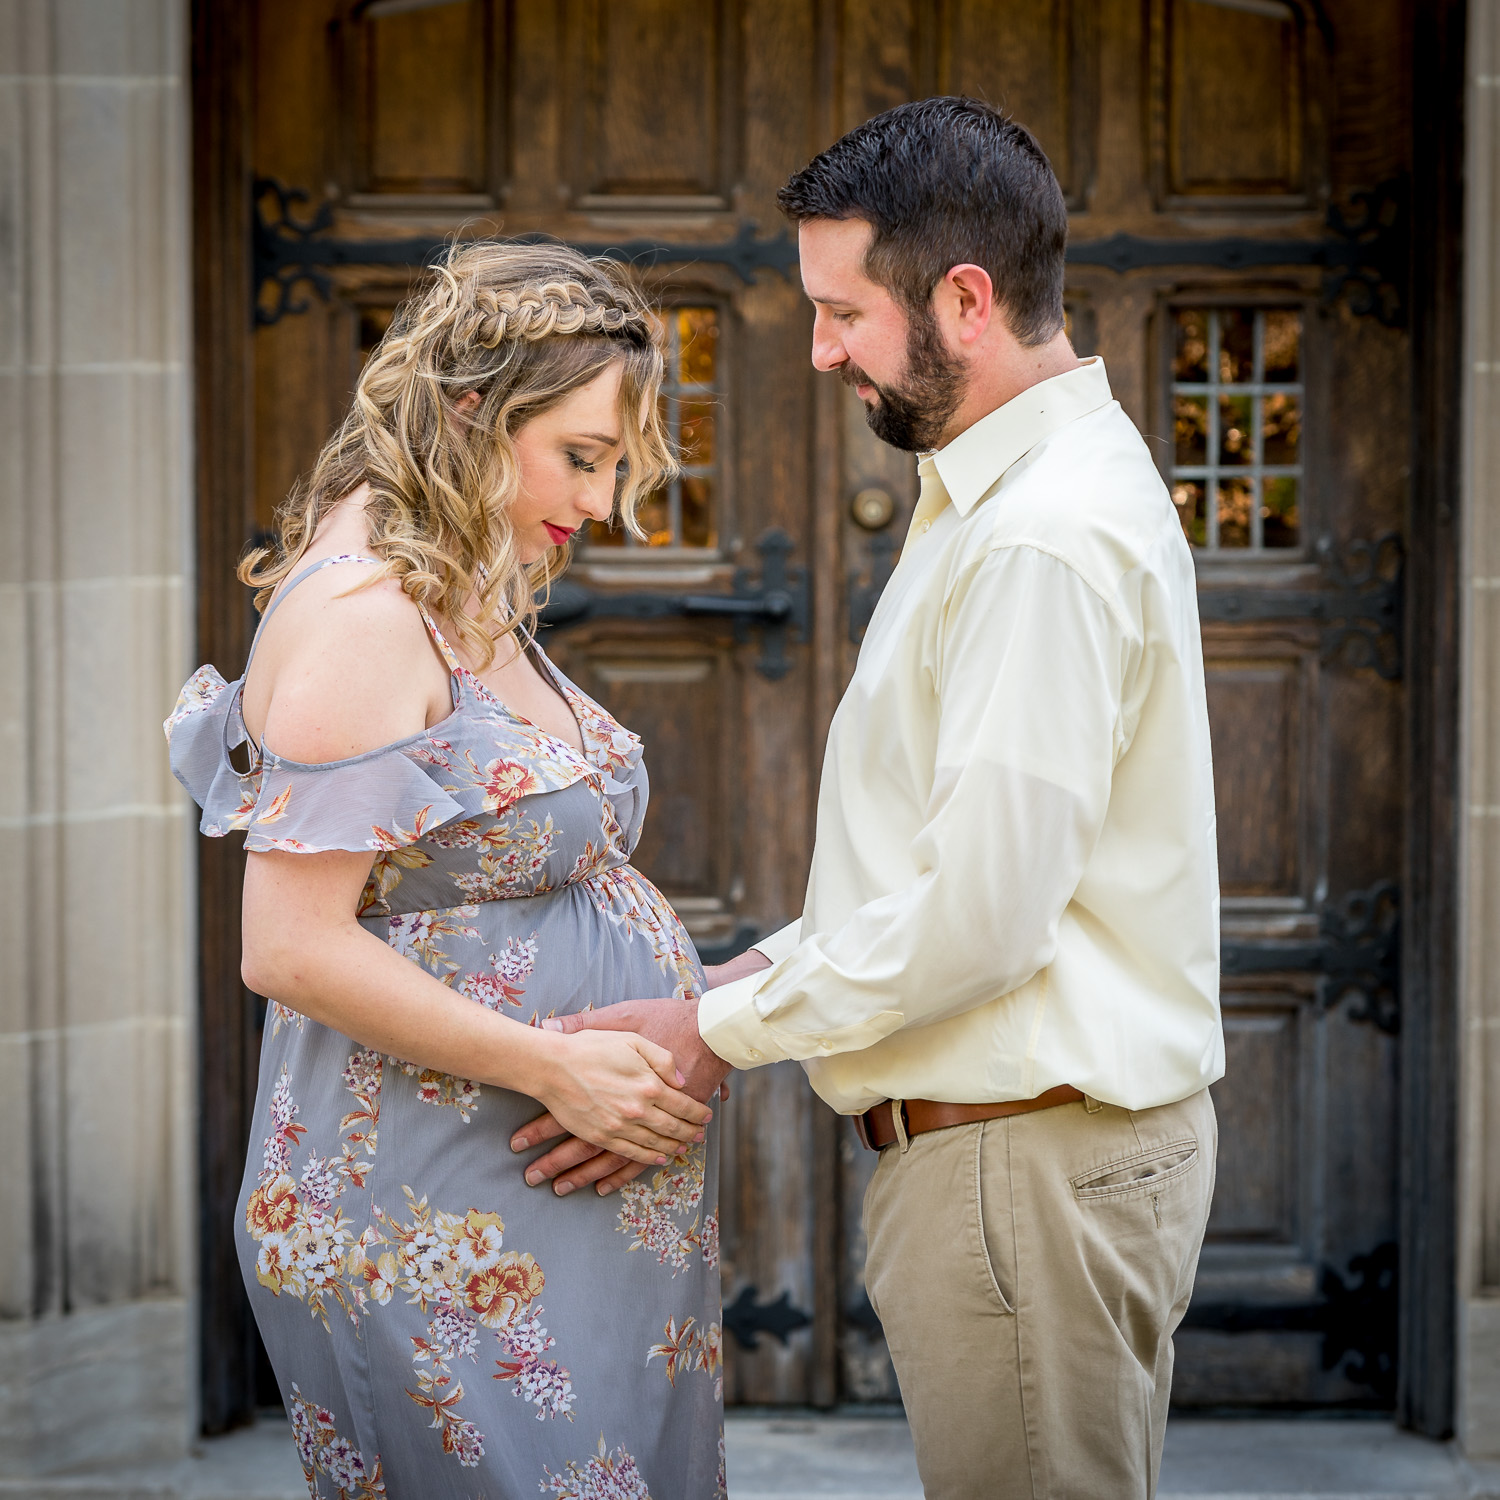 maternity portrait - How to Use the Lightroom Editing Trifecta: History, Snapshot, and Virtual Copies